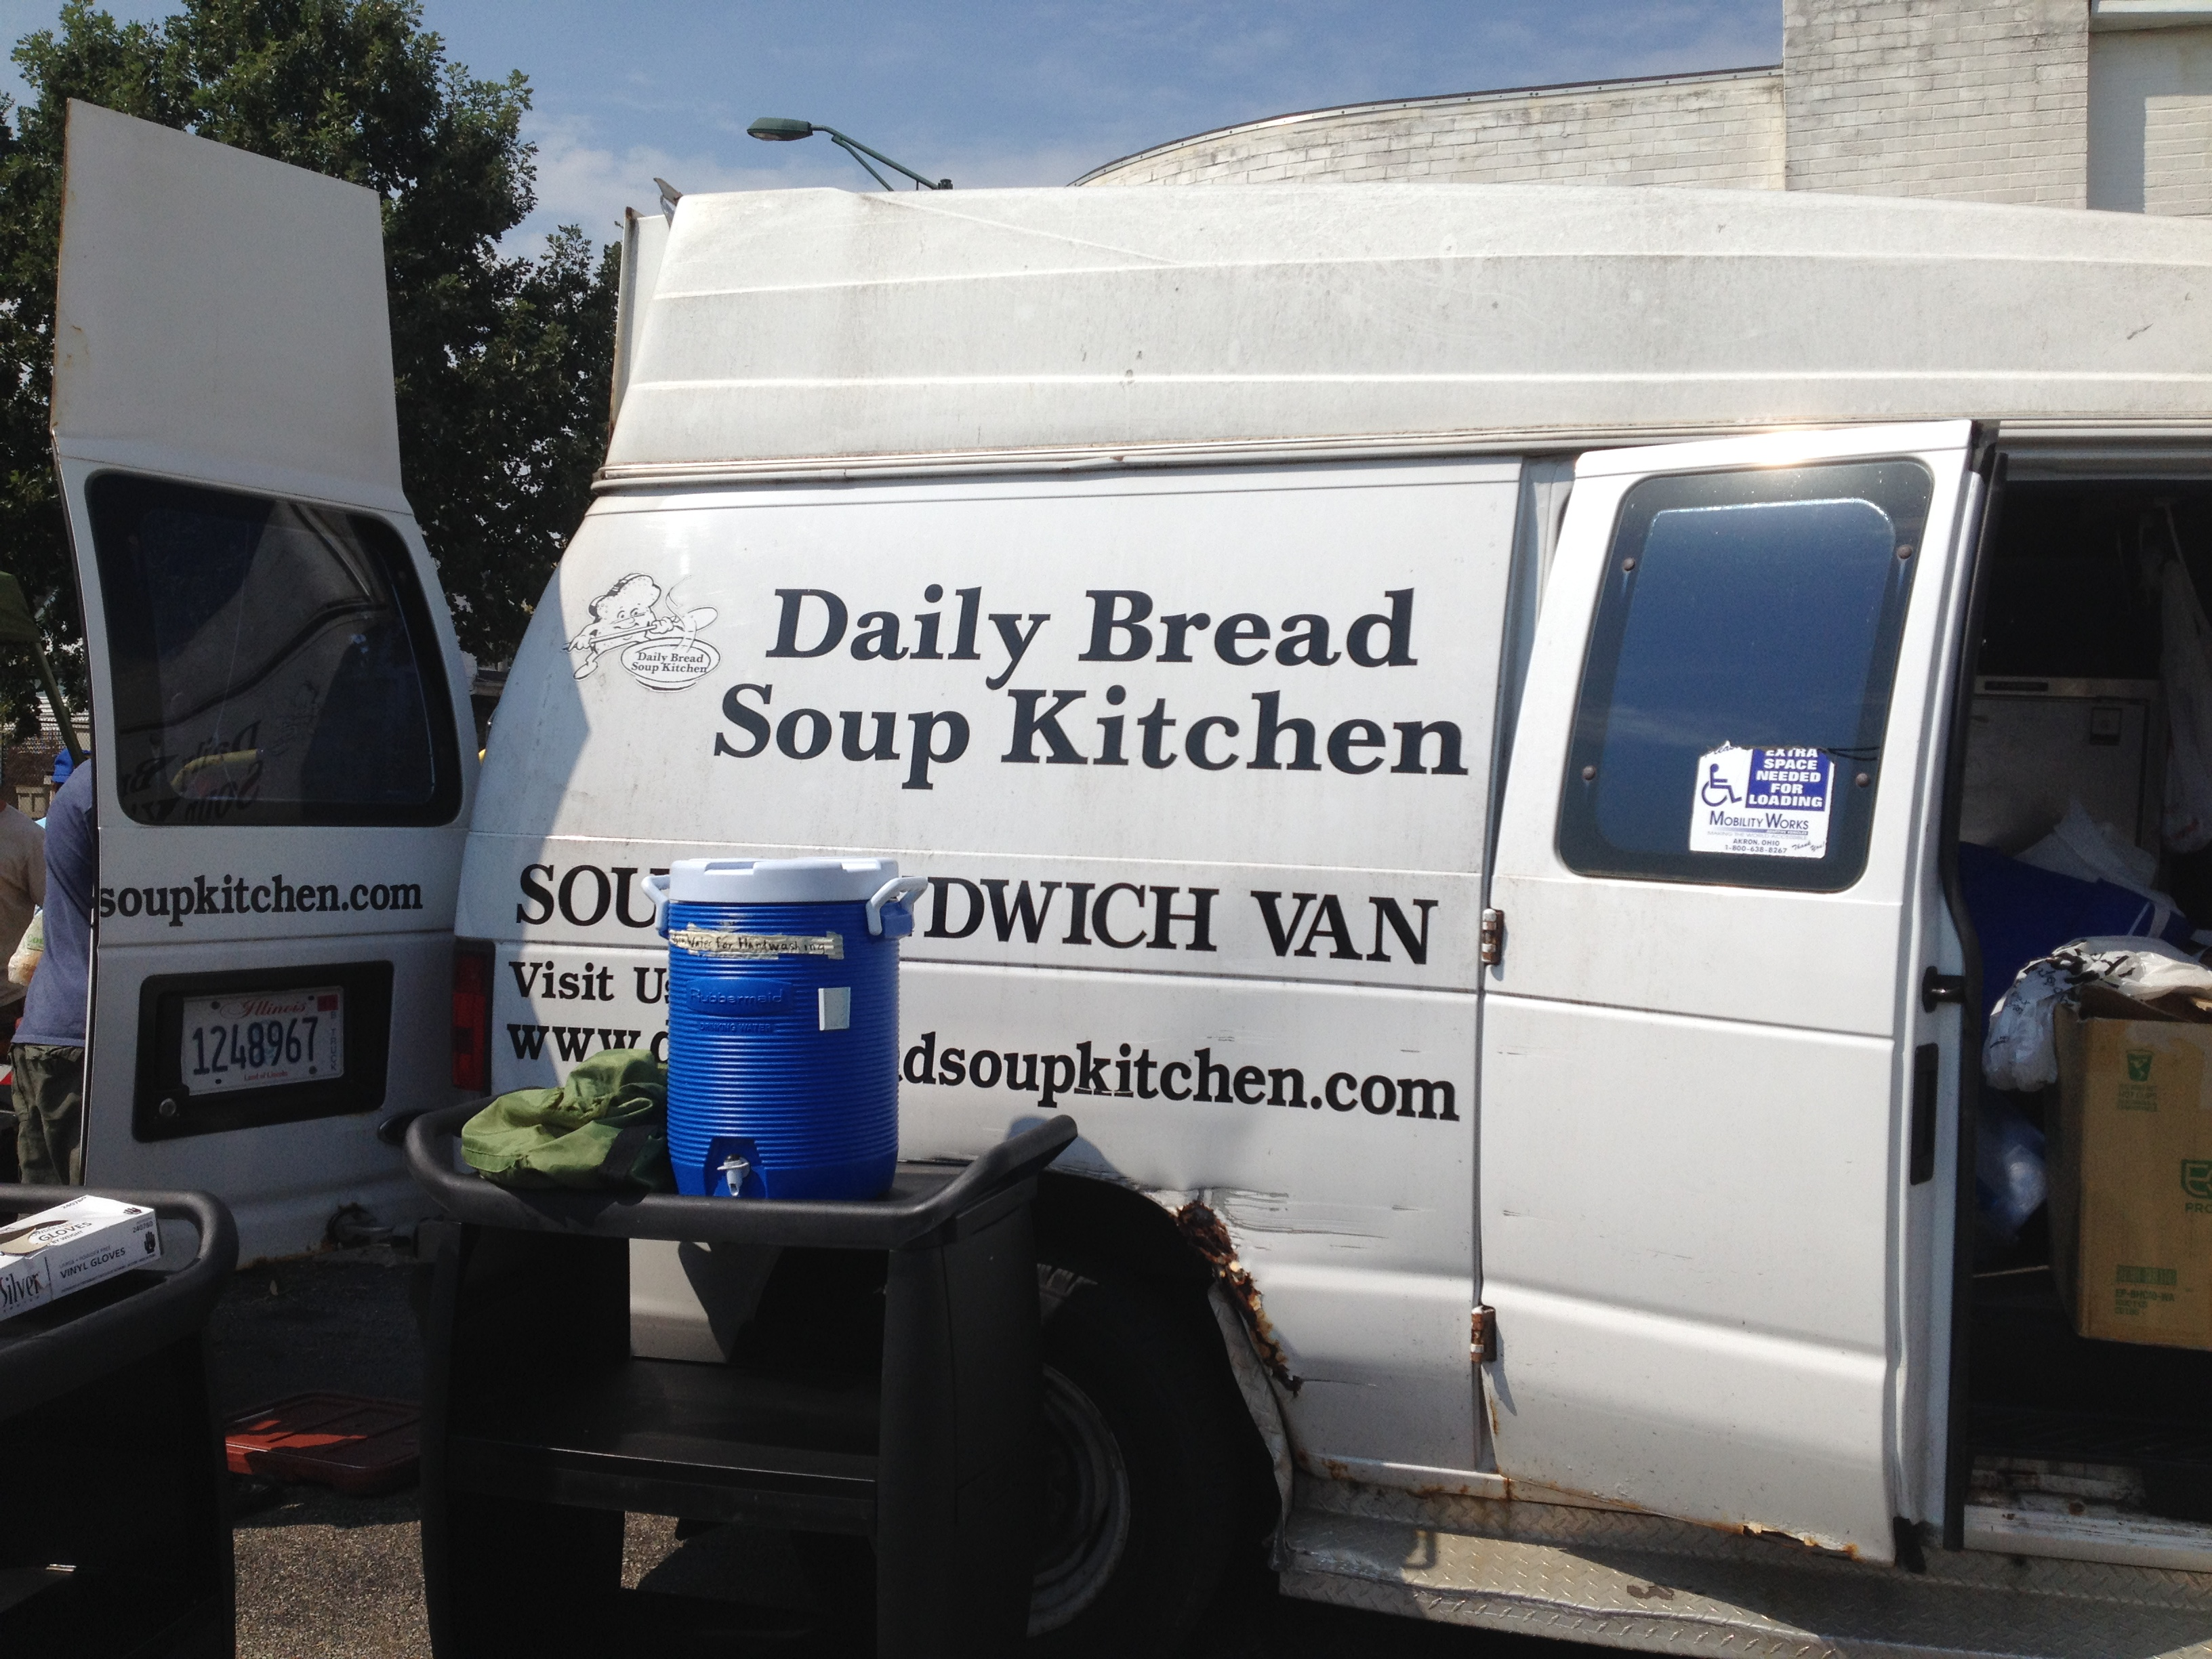 About – Daily Bread Soup Kitchen